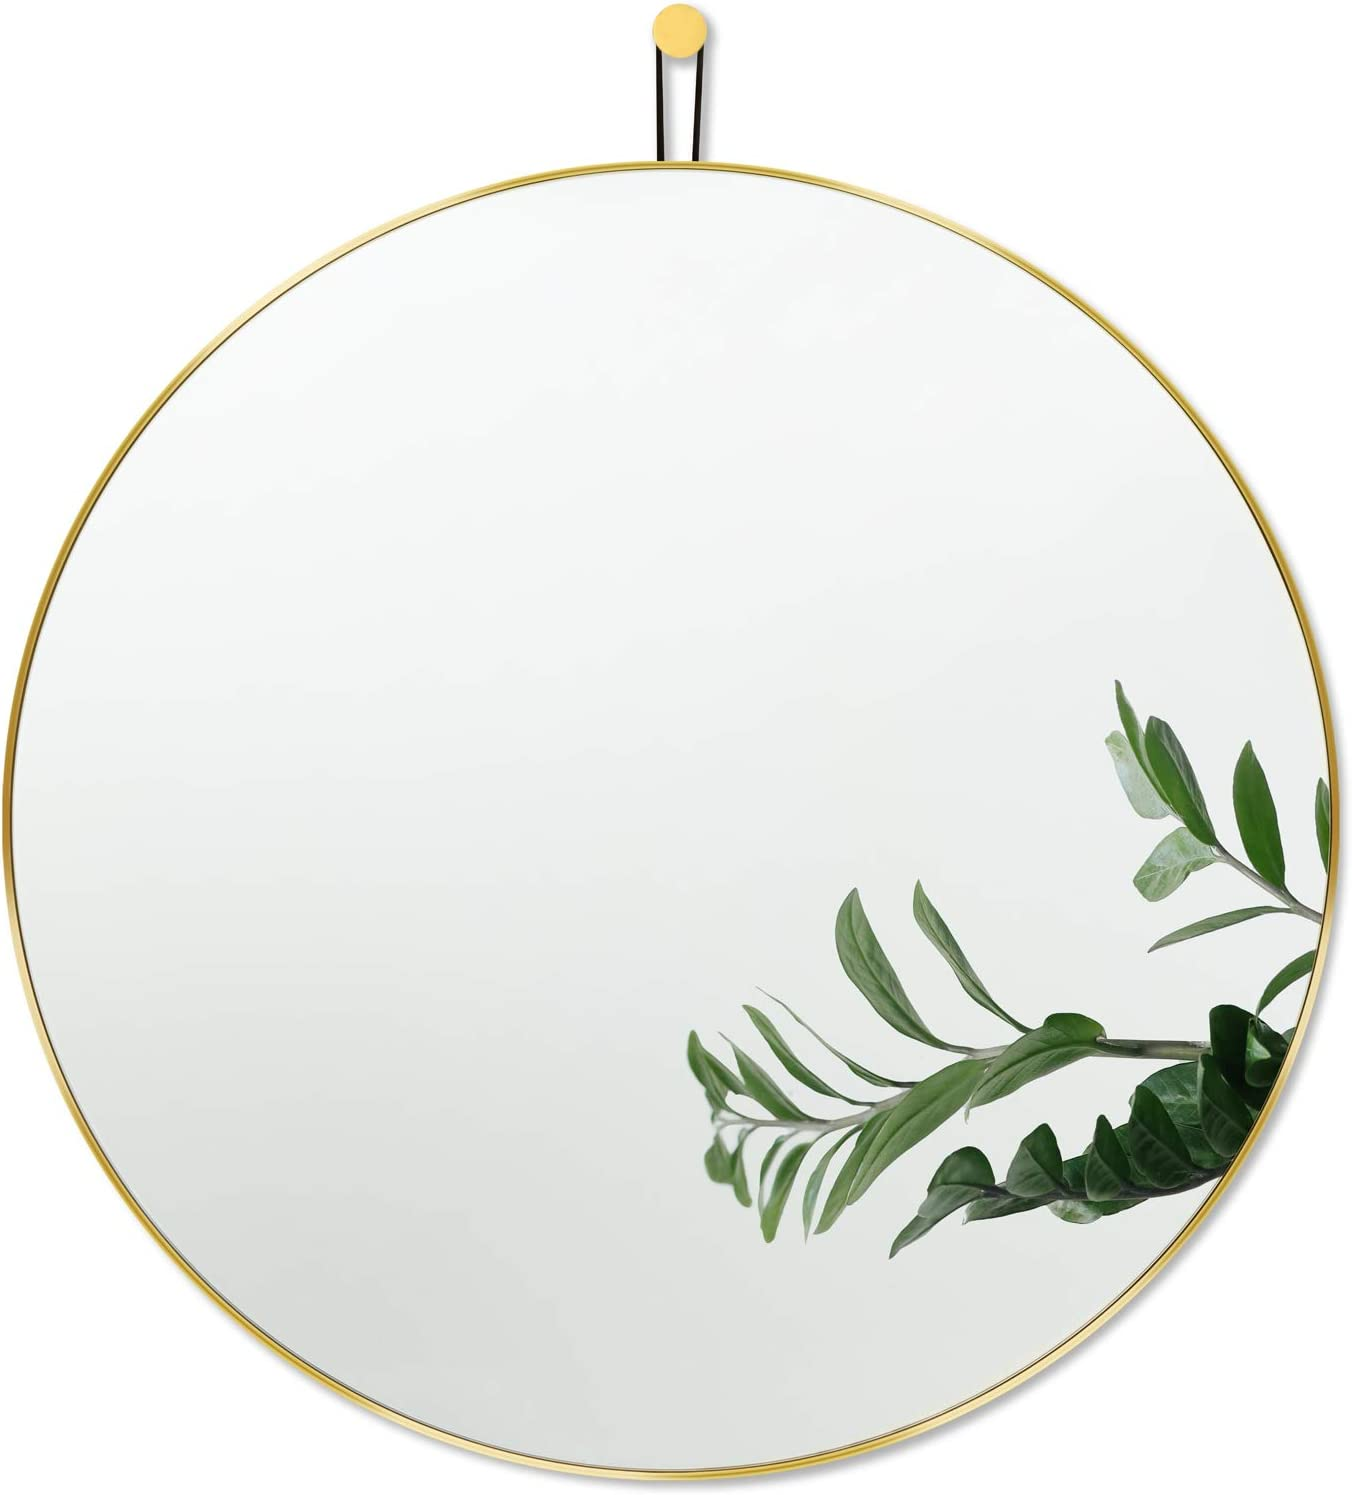 Harmati Round Mirror Circle Gold - Circular Mirror 24 Inch Metal Framed Wall Mounted, Hanging Brass Round Wall Mirror Modern Decorative for Bathroom, Living Room, Bedroom , Entryway